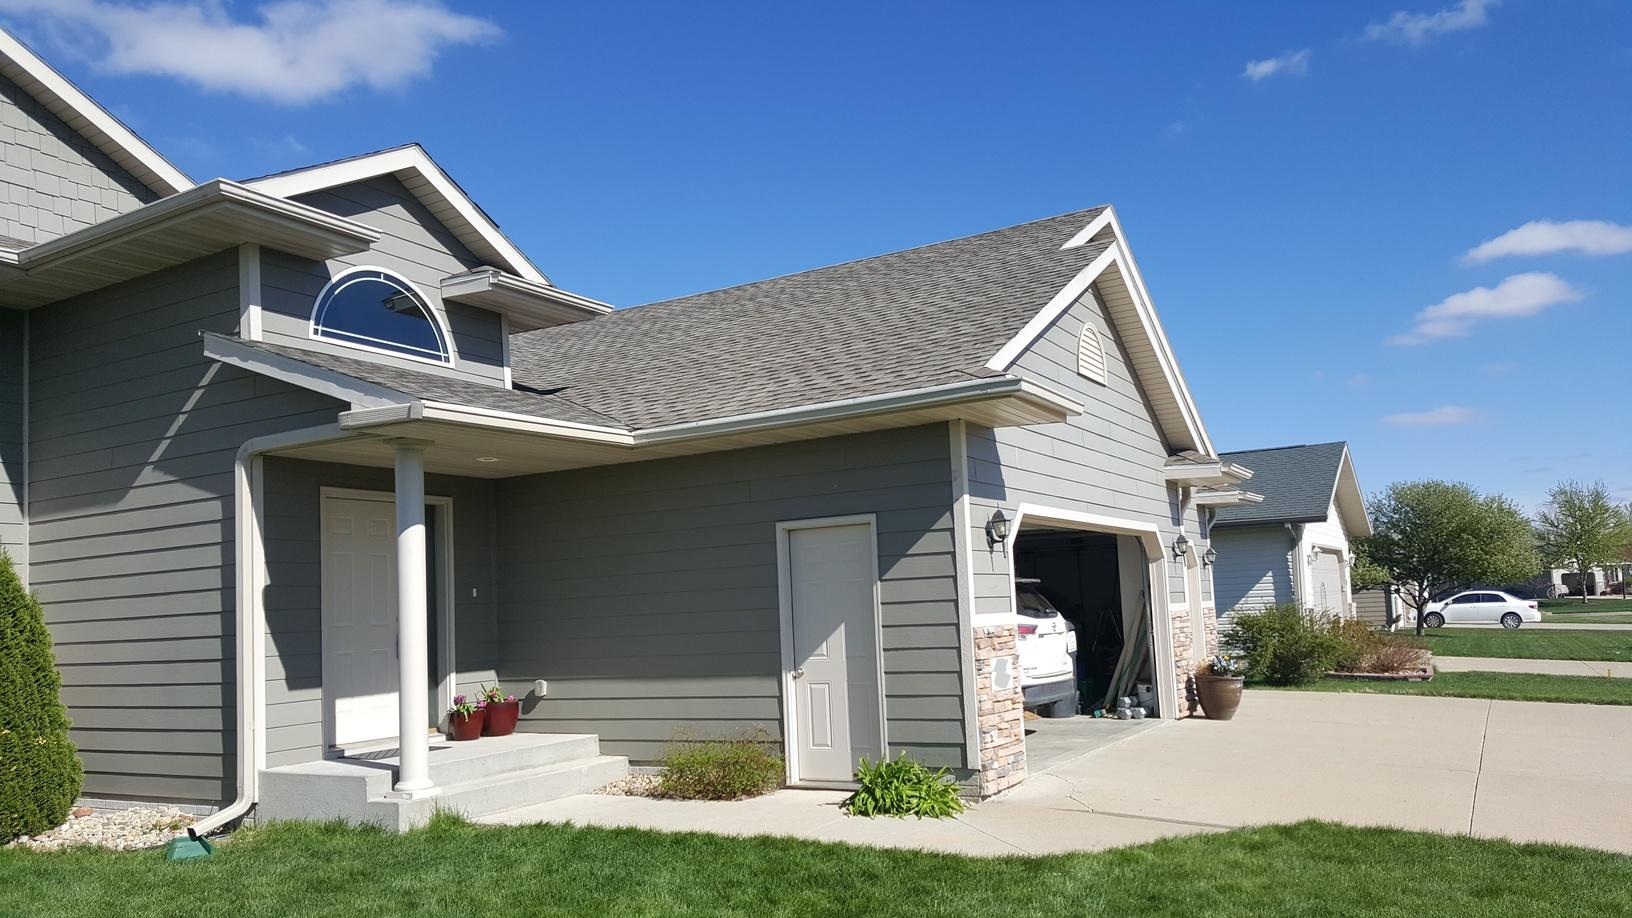 Leafguard Gutters Of South Dakota Seamless Gutters